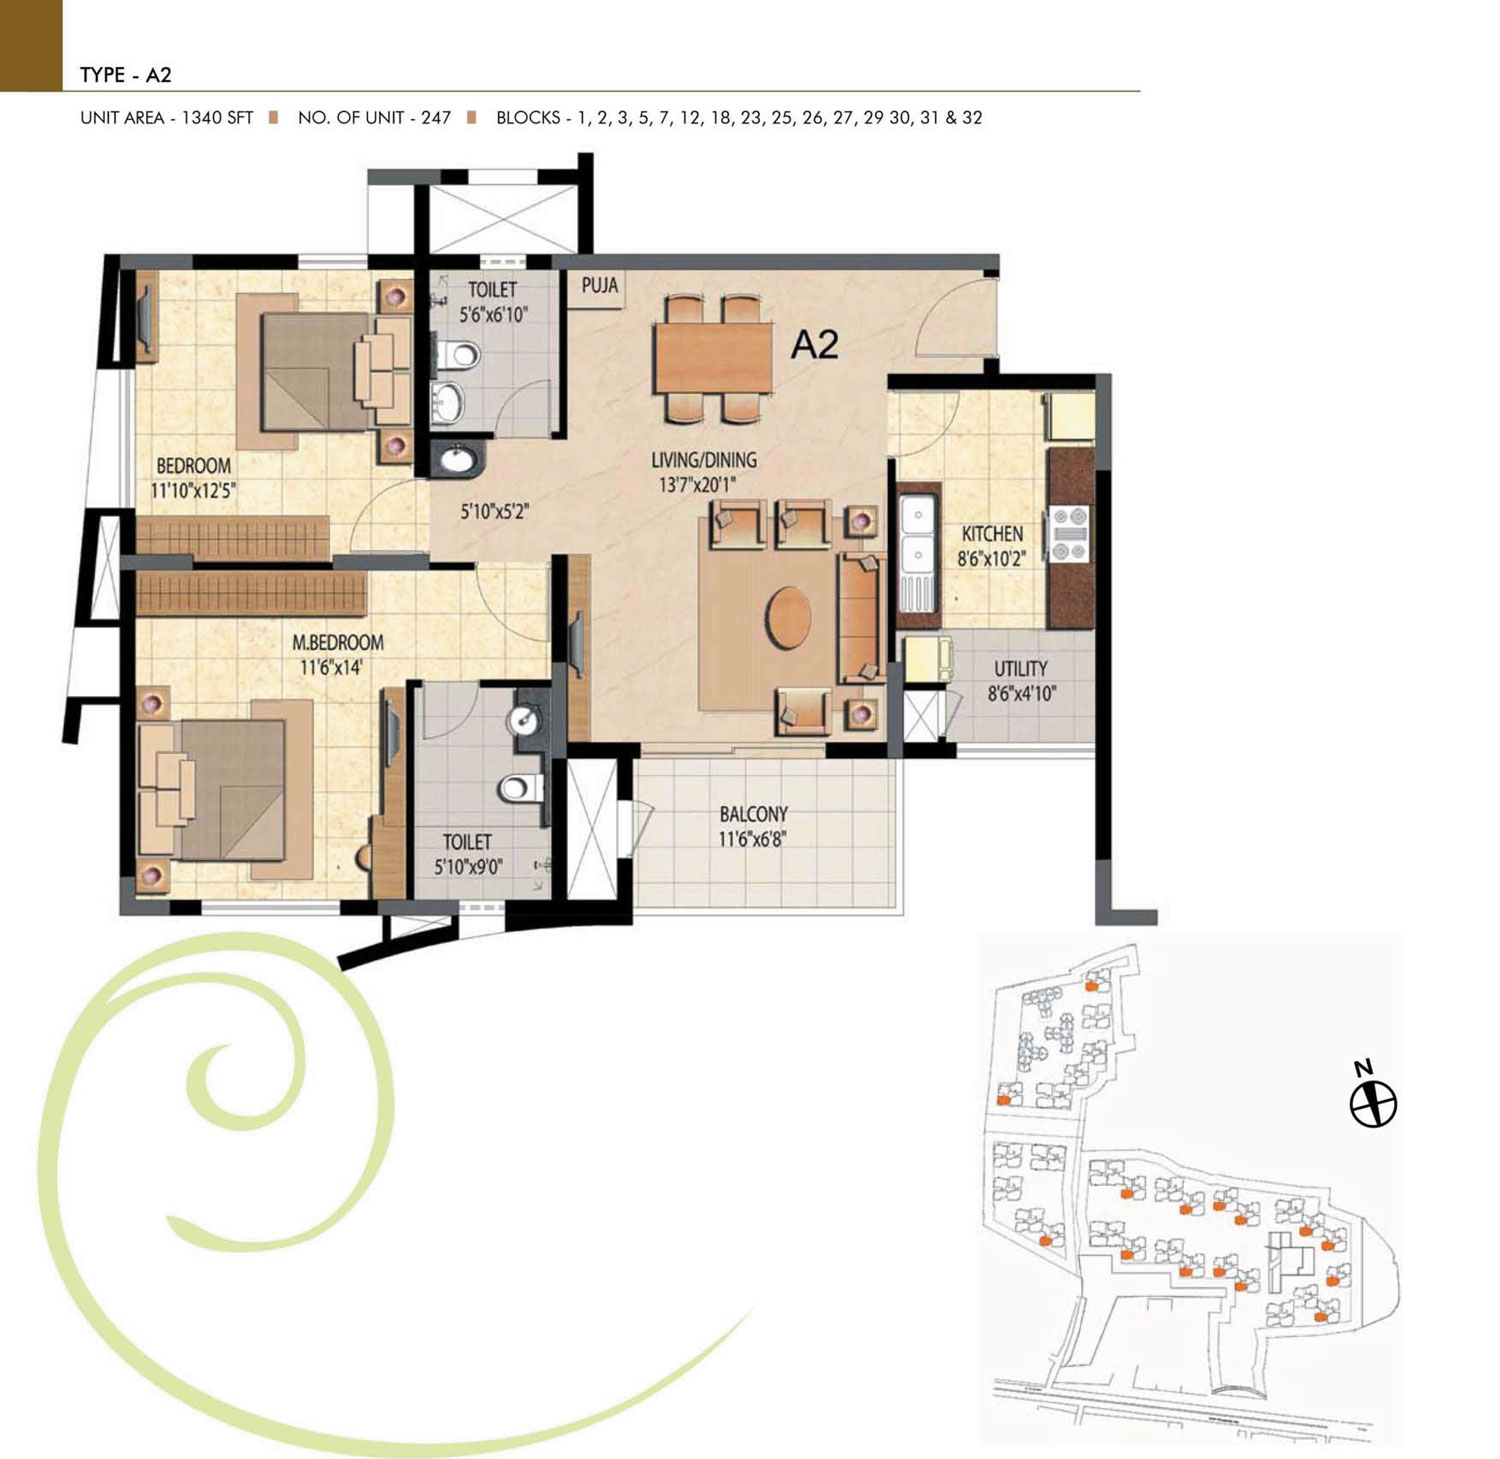 Type A2 - 2 Bed - 1340 Sq Ft